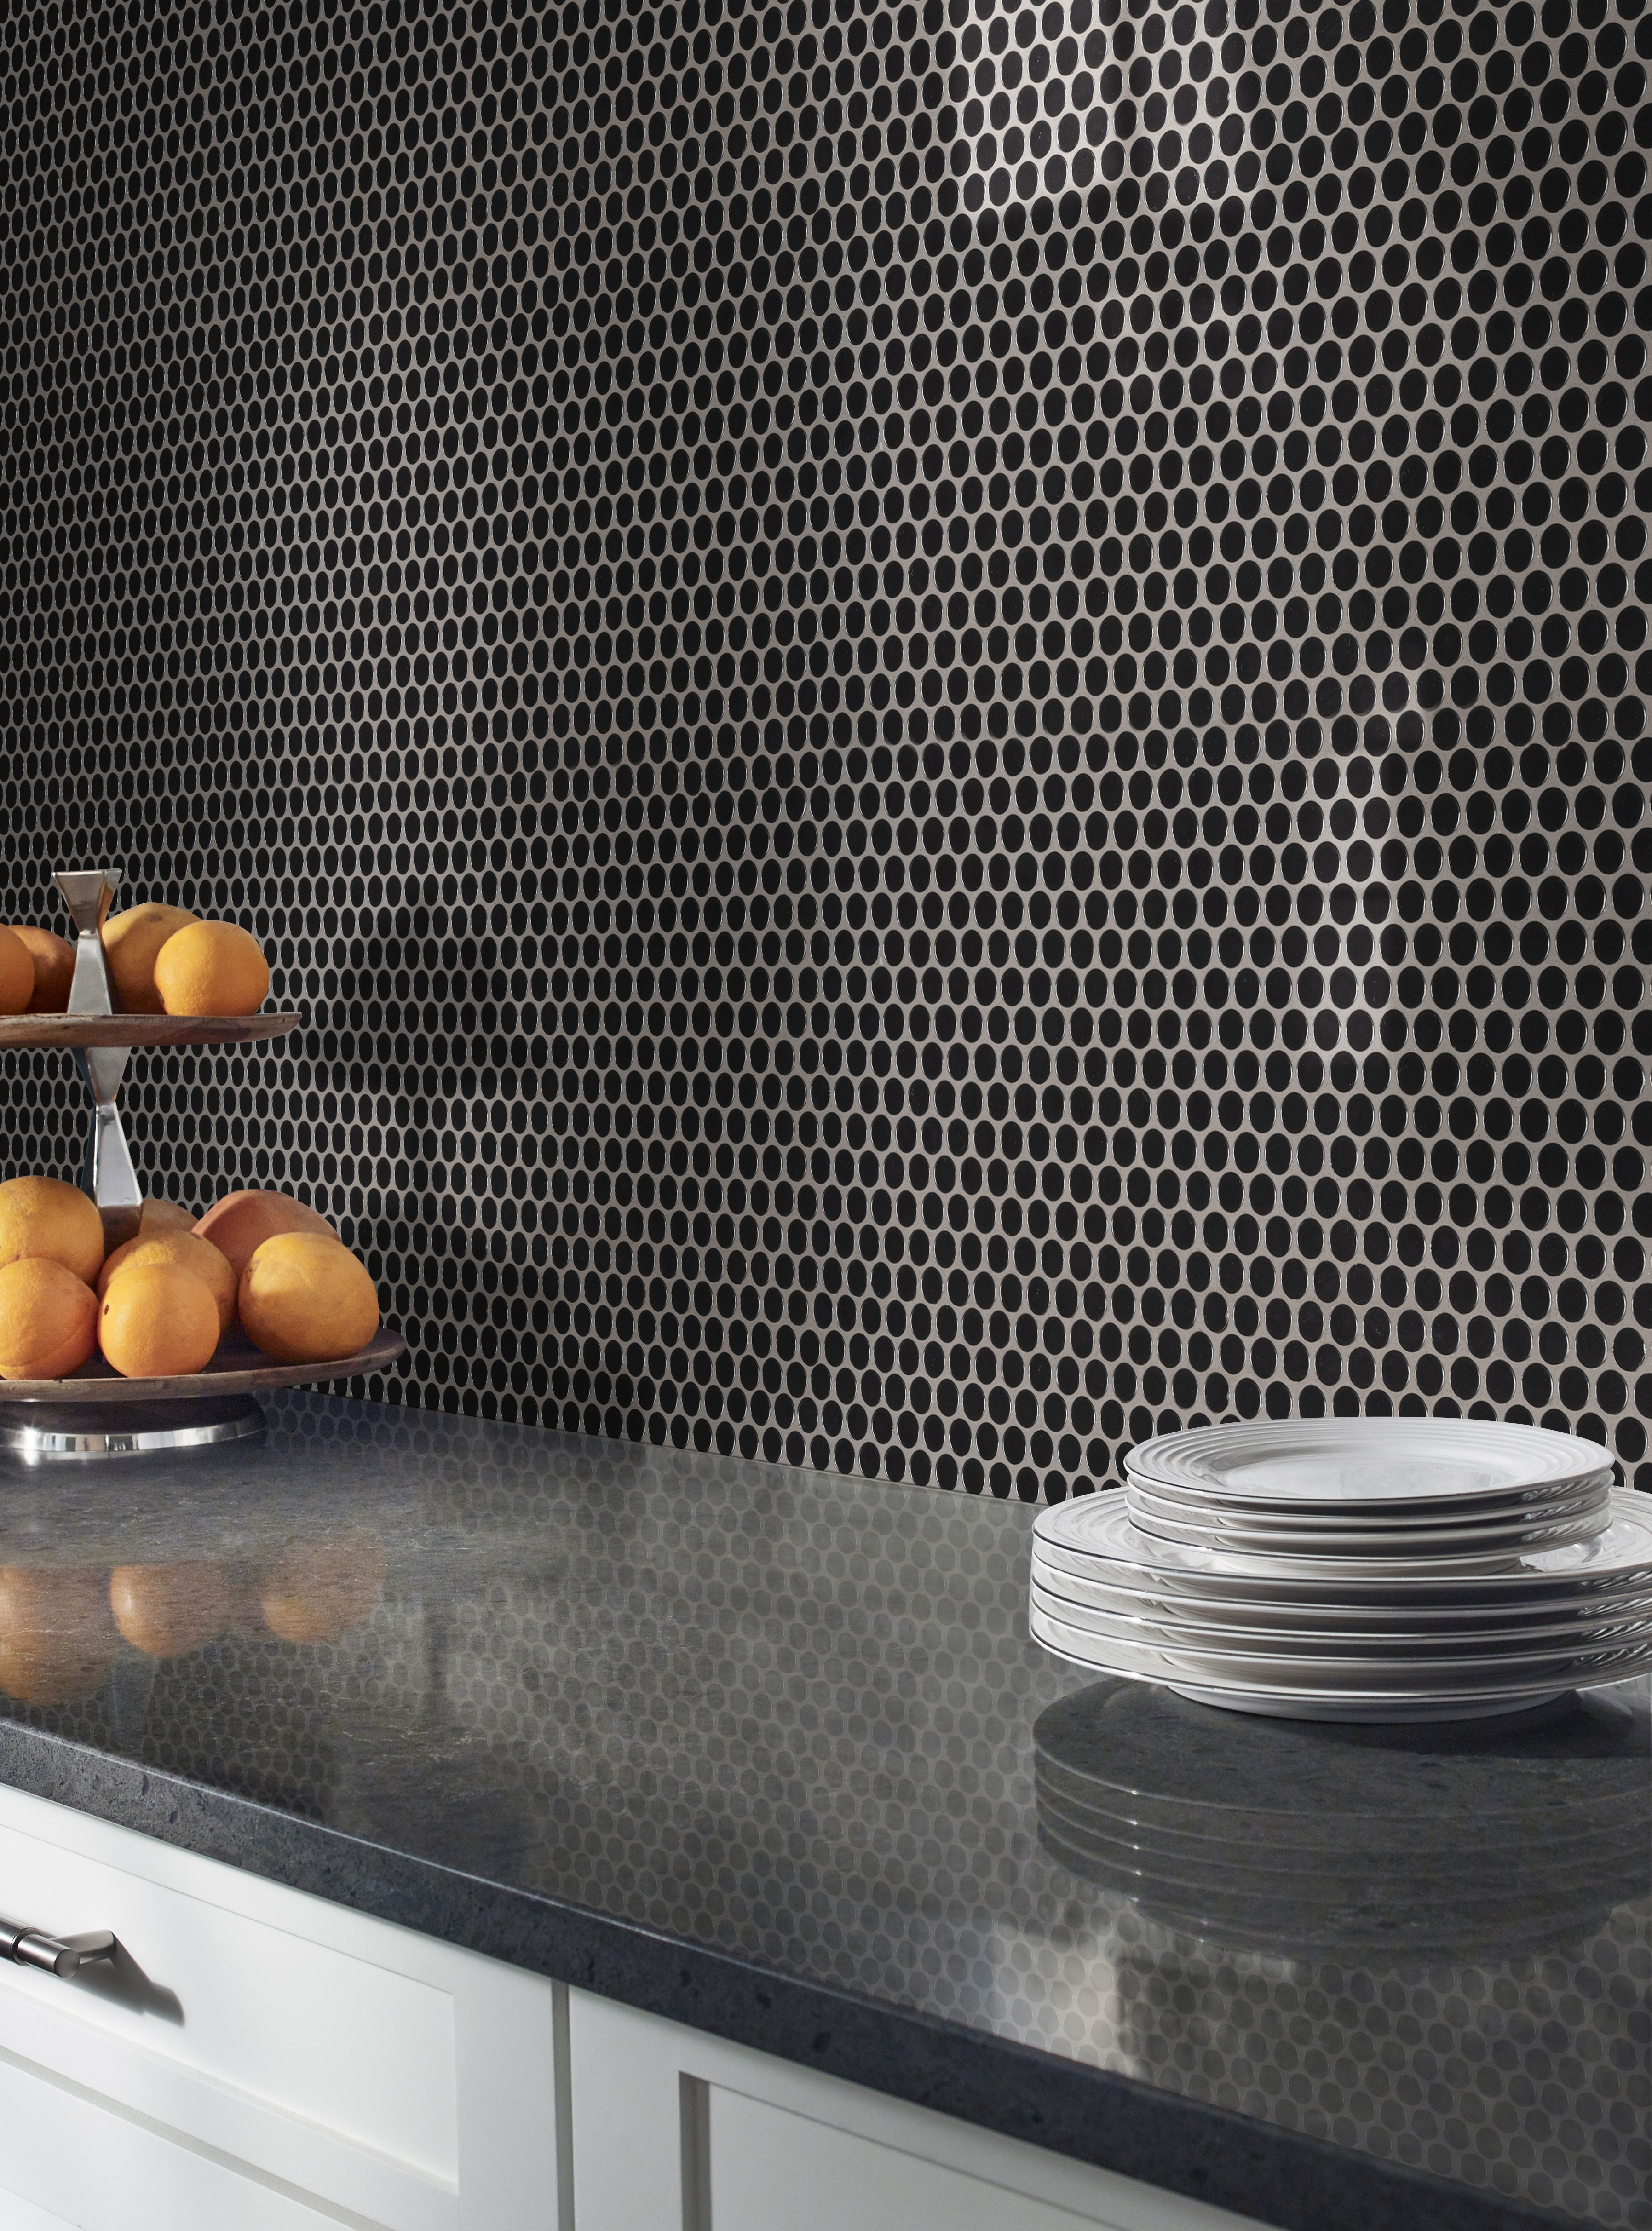 - Black Glossy Penny Round Tiles Feature Jet Black Tiles In A